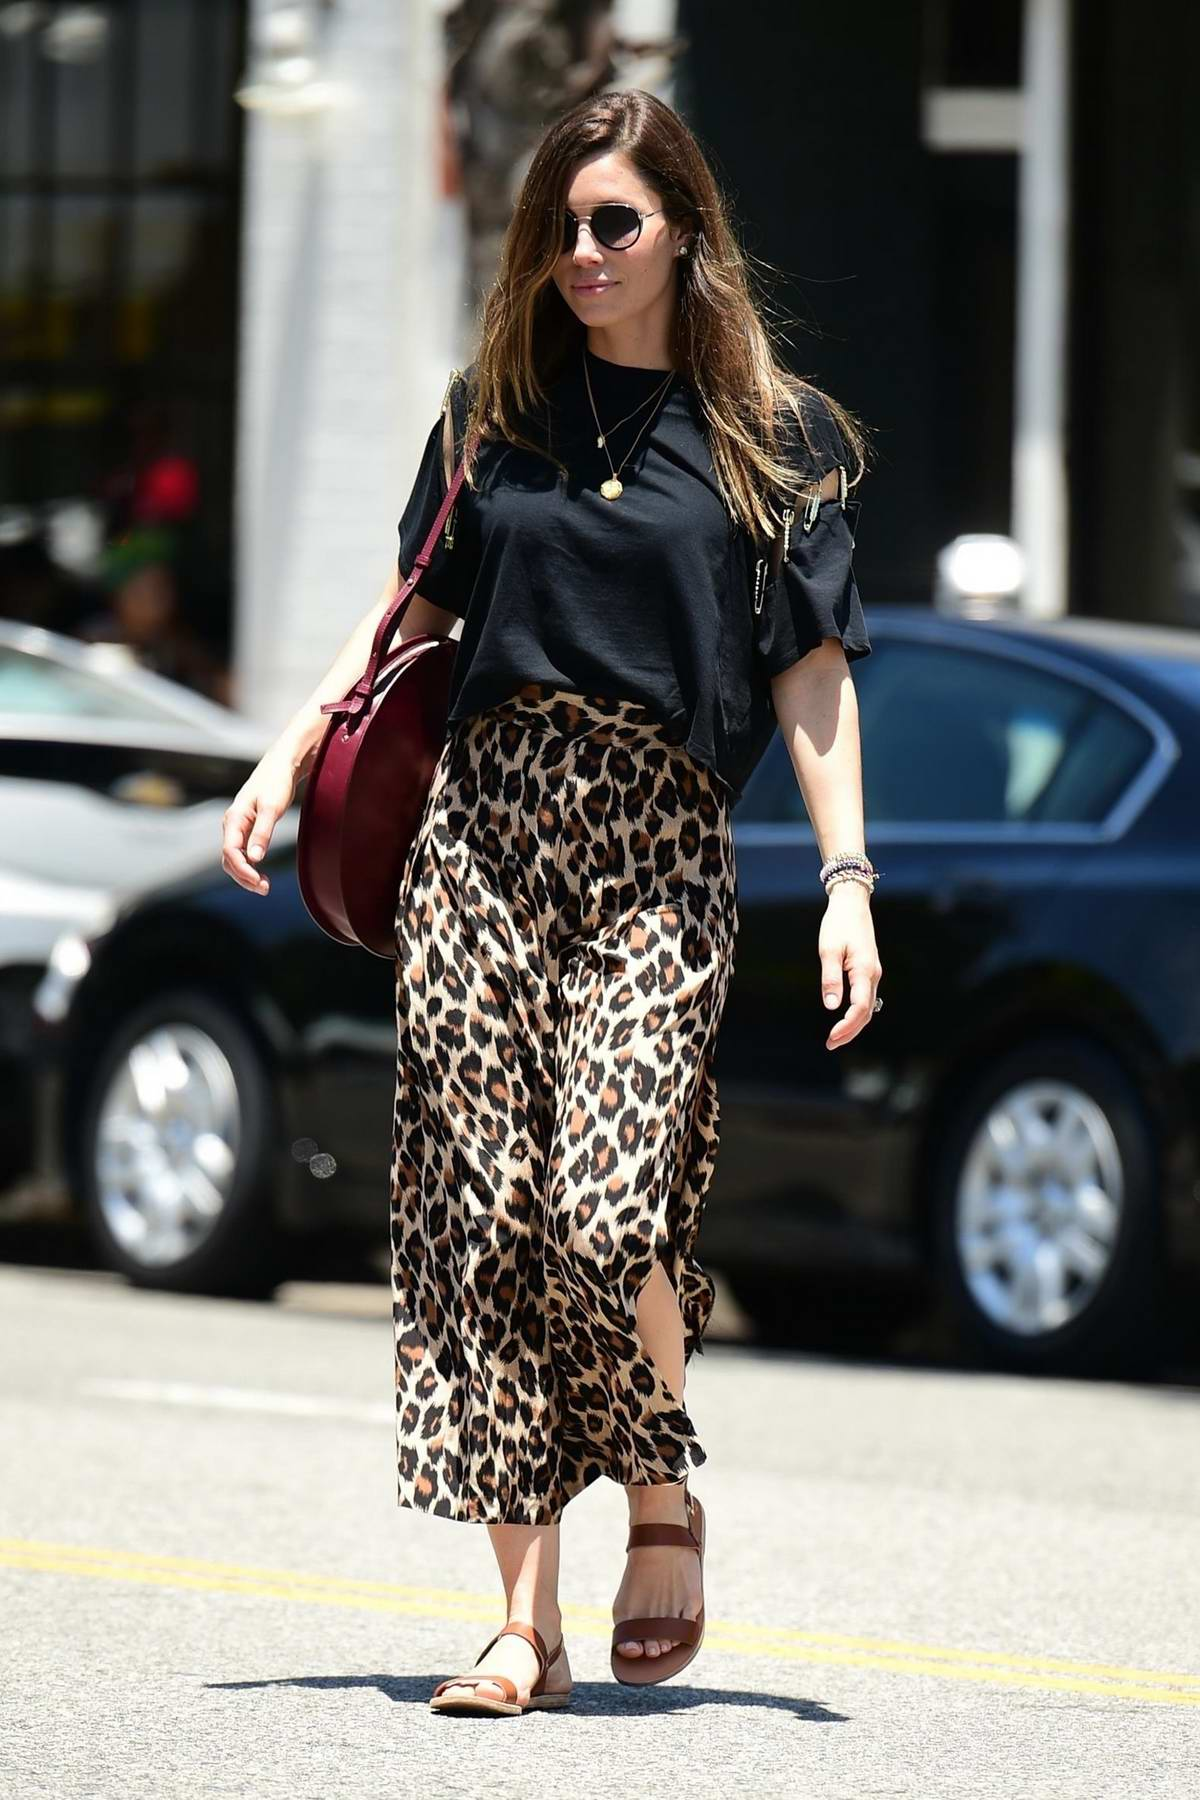 Jessica Biel dons black top and leopard print while for lunch with a friend at Joan's on Third in Los Angeles